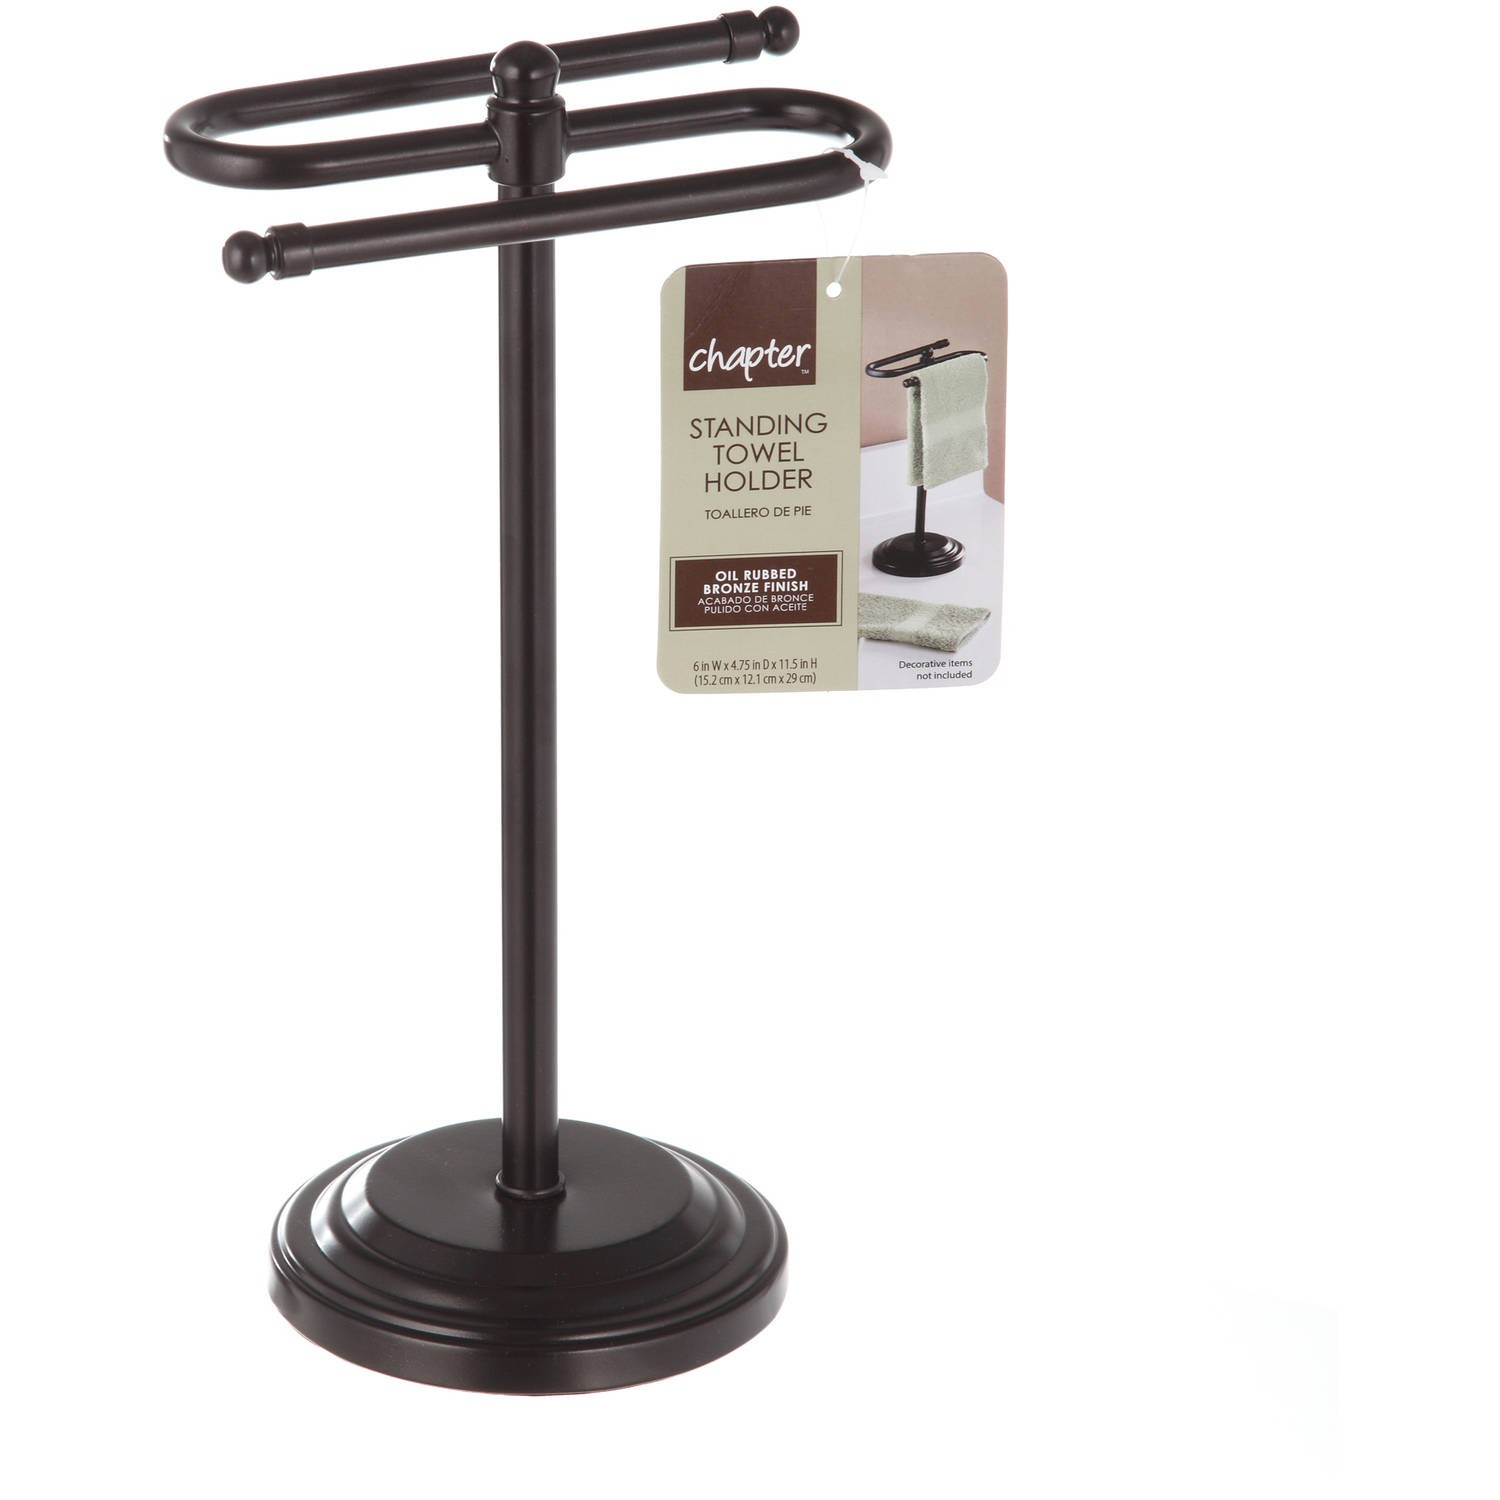 Chapter Free-Standing Towel Holder - Oil Rubbed Bronze